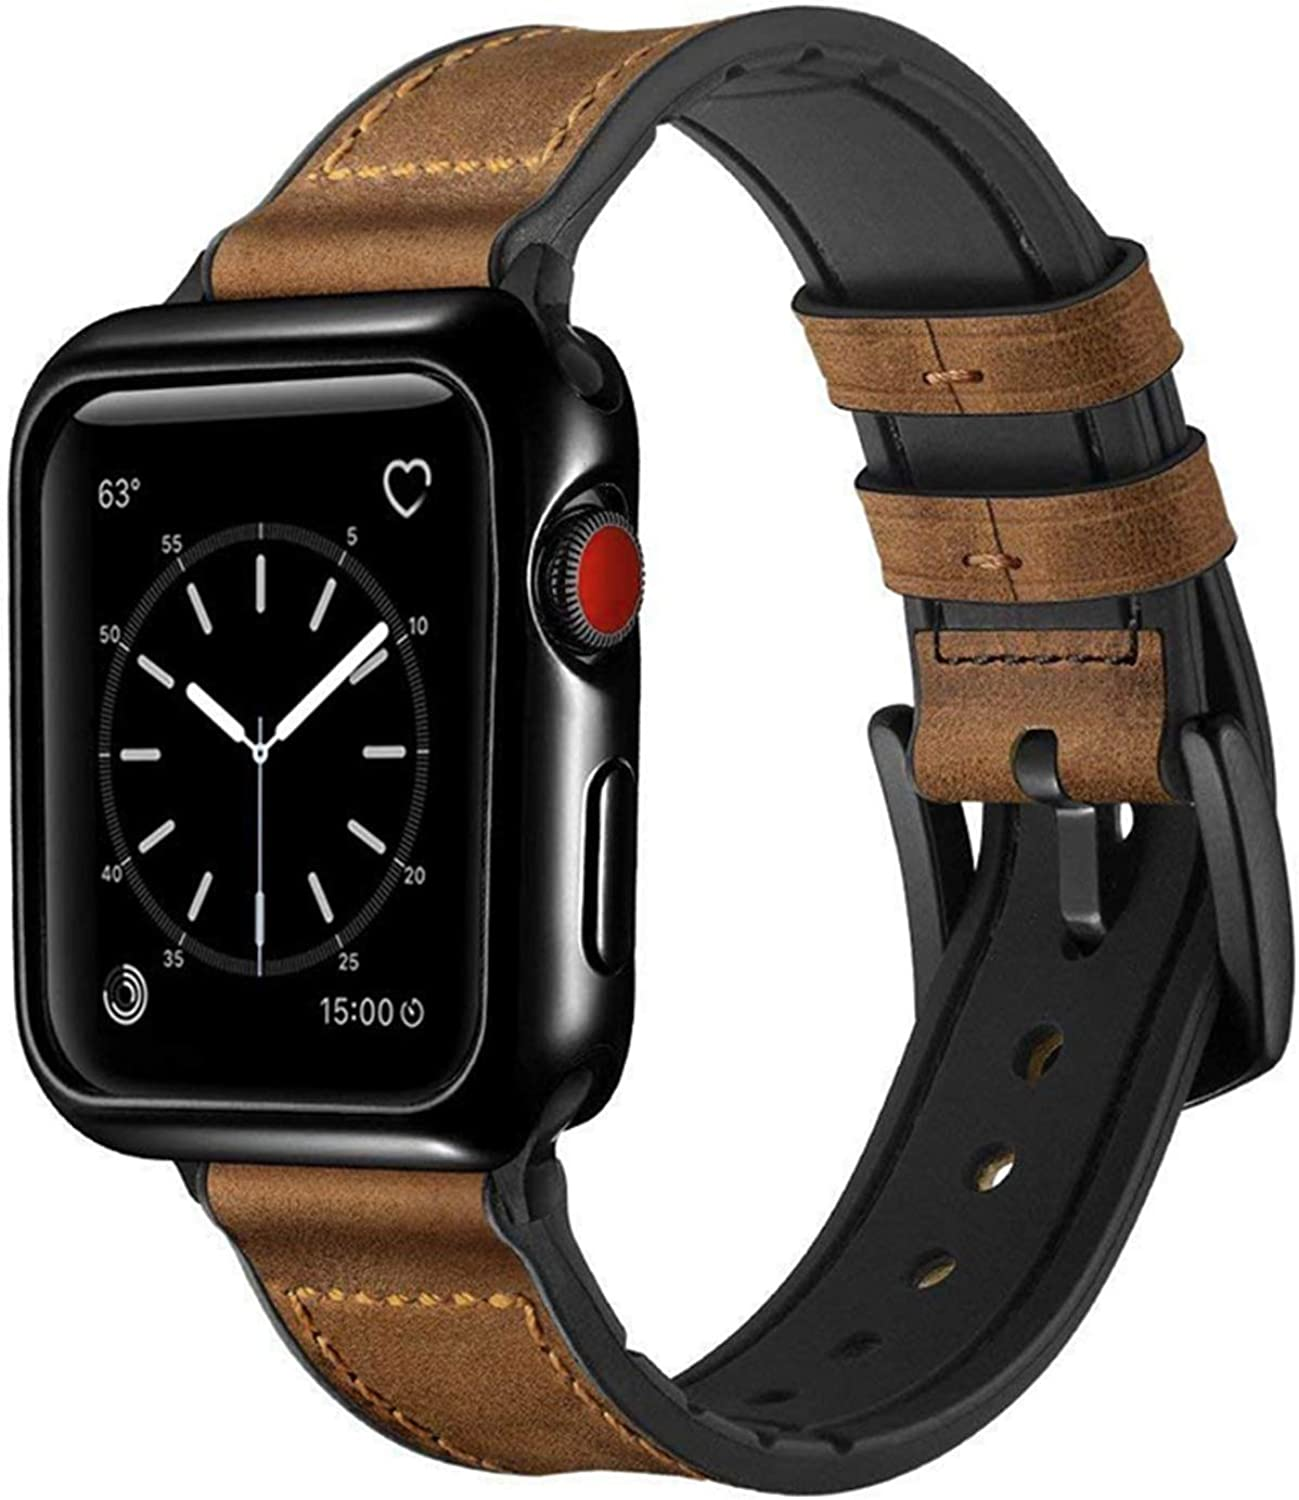 Speidel 42mm Light Brown Luxury watchband with Black AdaptersBuckle and Case Protective Cover for Smart Watch